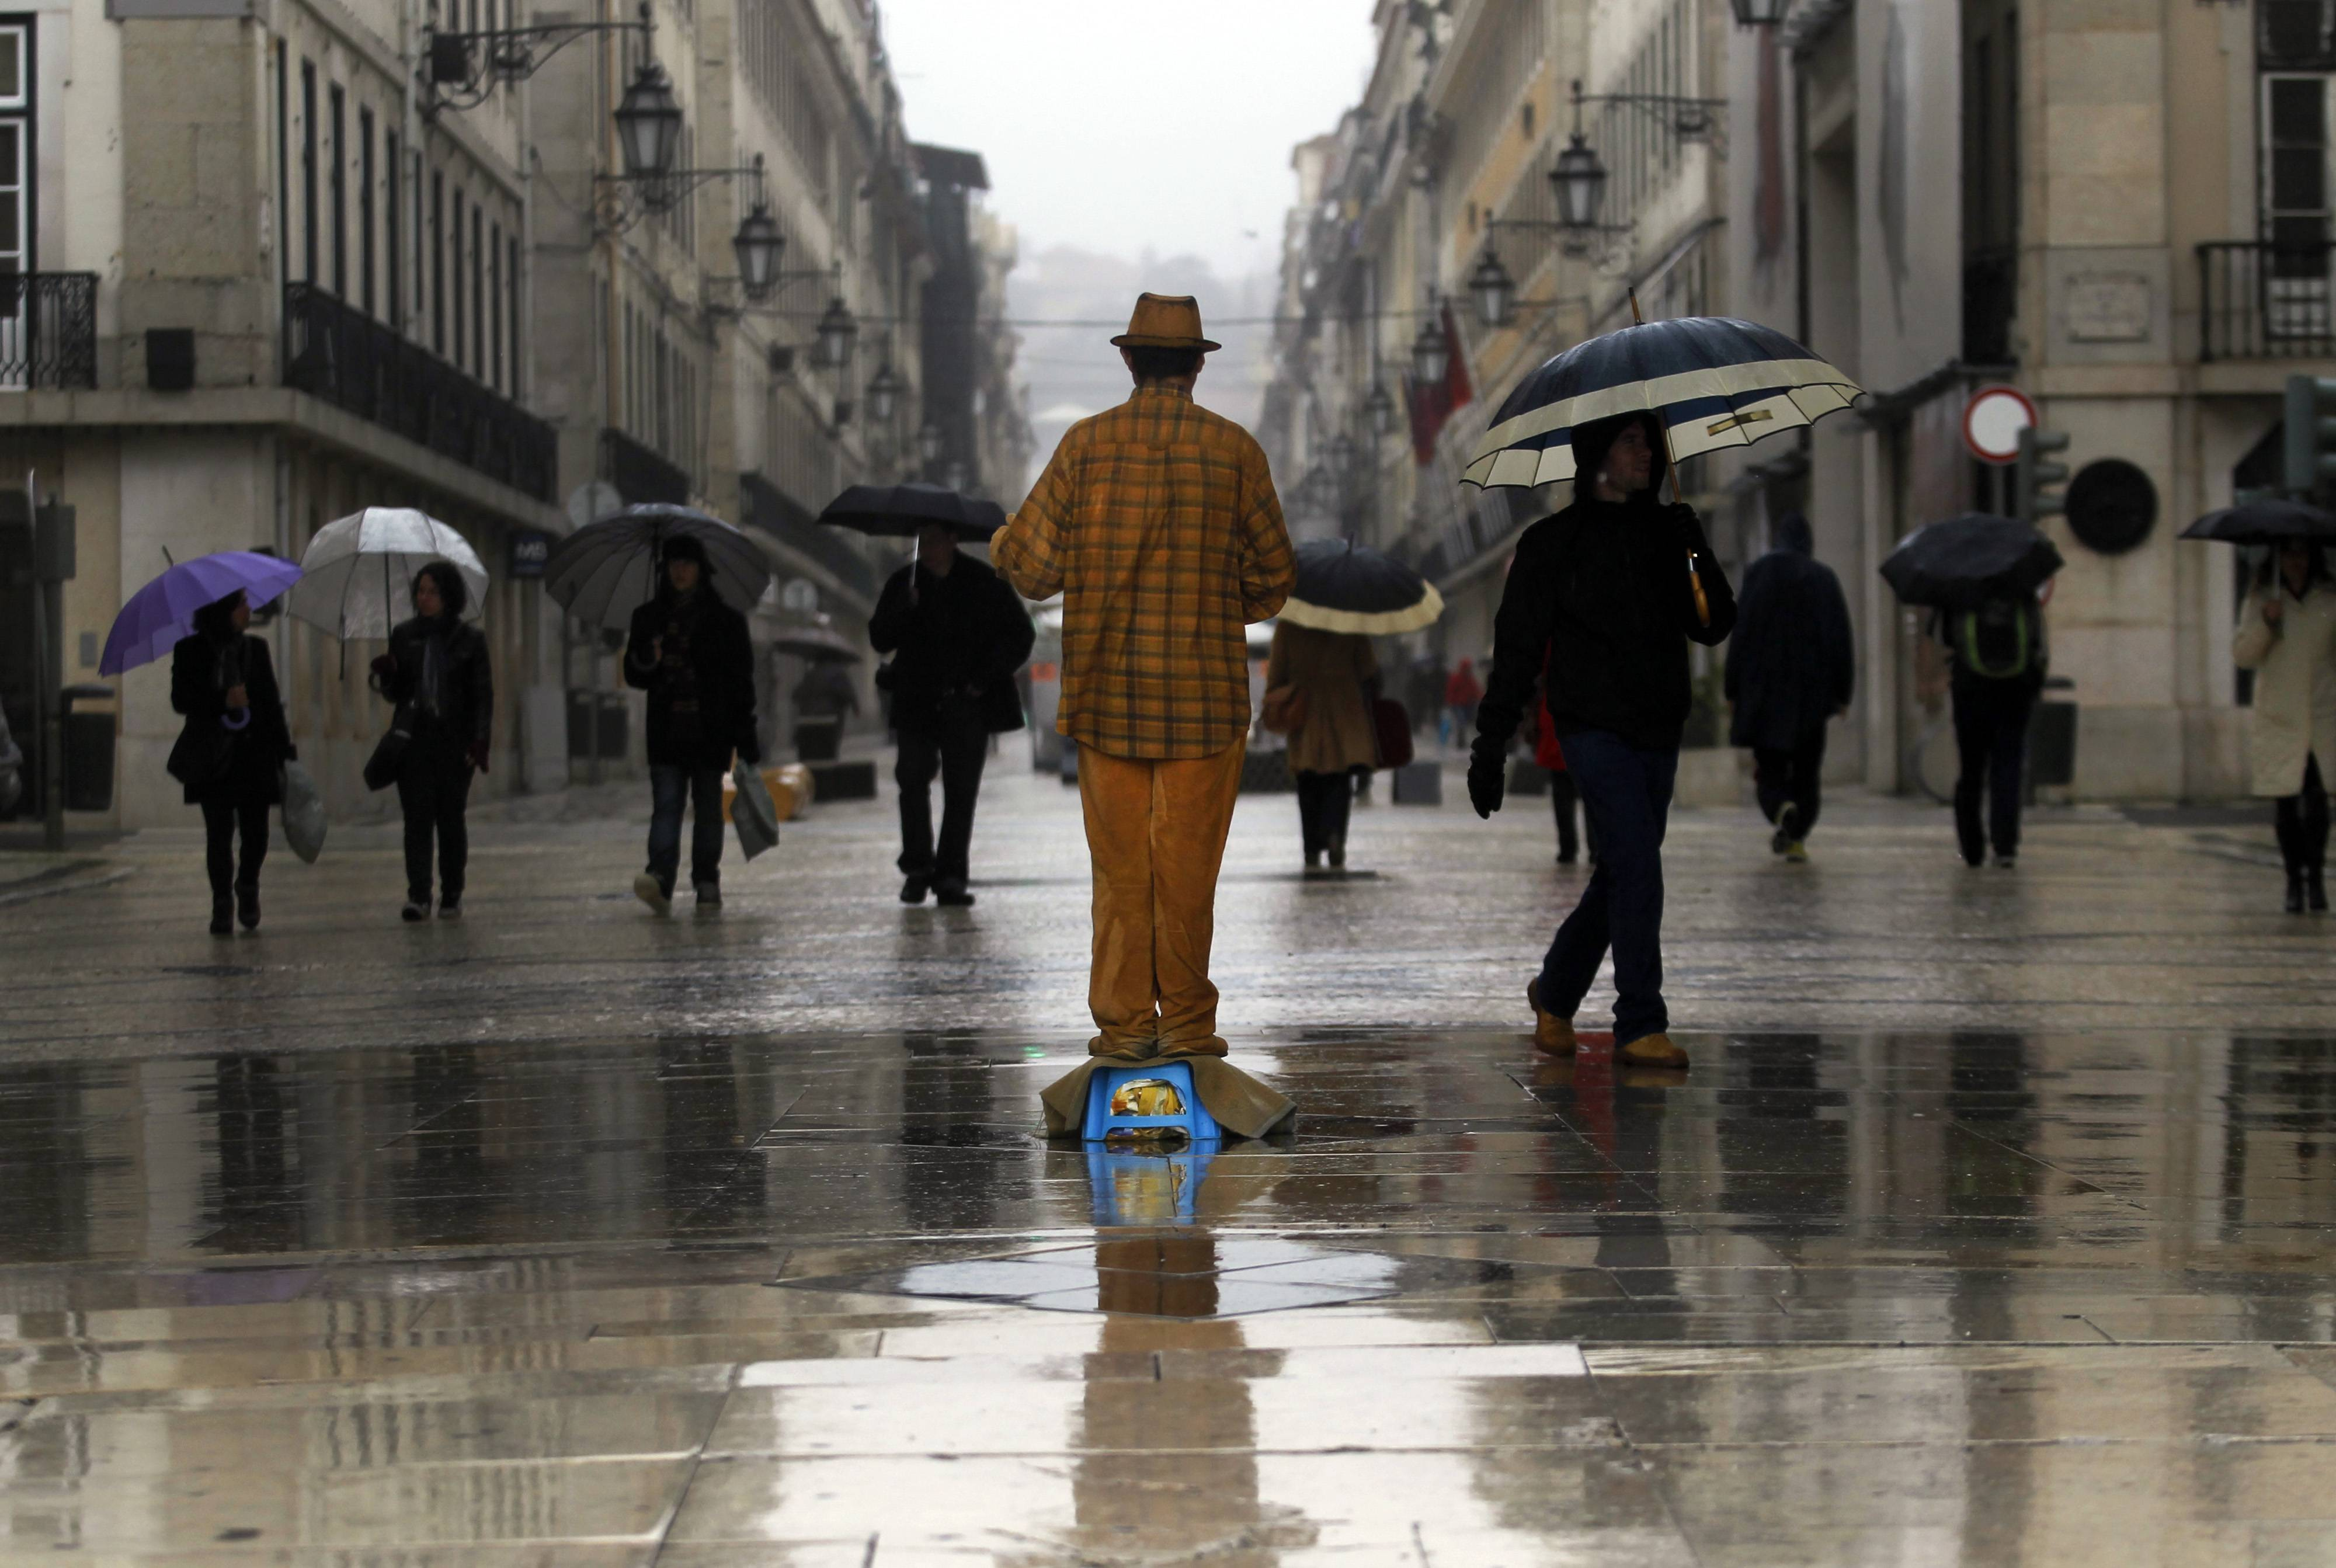 A street artist performs as passers-by shelter against the rain with umbrellas in downtown Lisbon, Tuesday, Feb. 11, 2014.